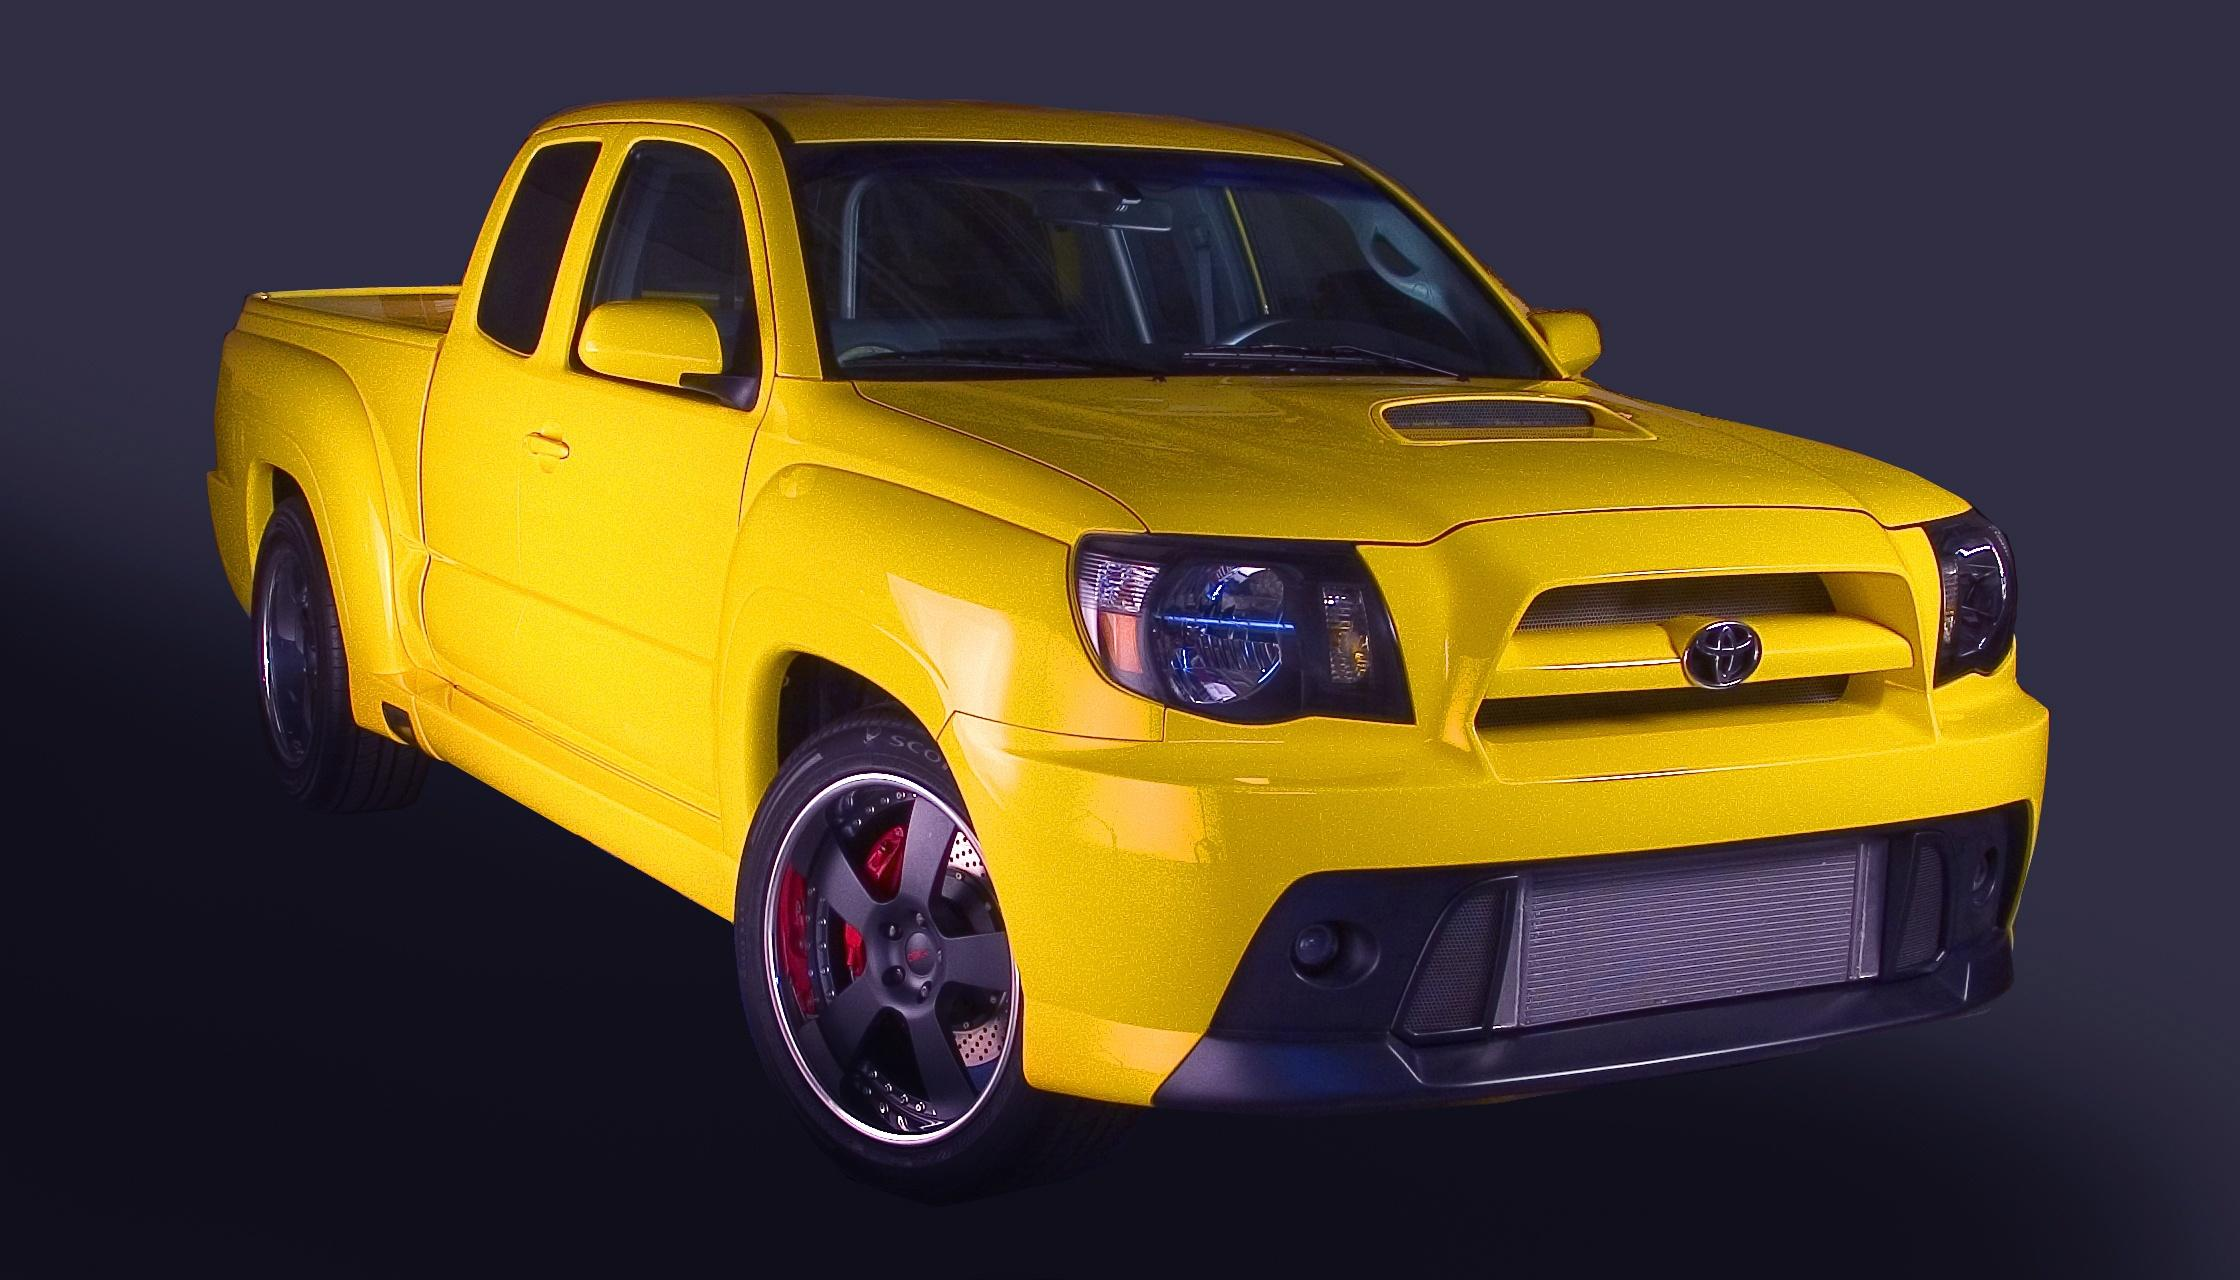 2008 Toyota Trd Tacoma X Runner Concept Top Speed